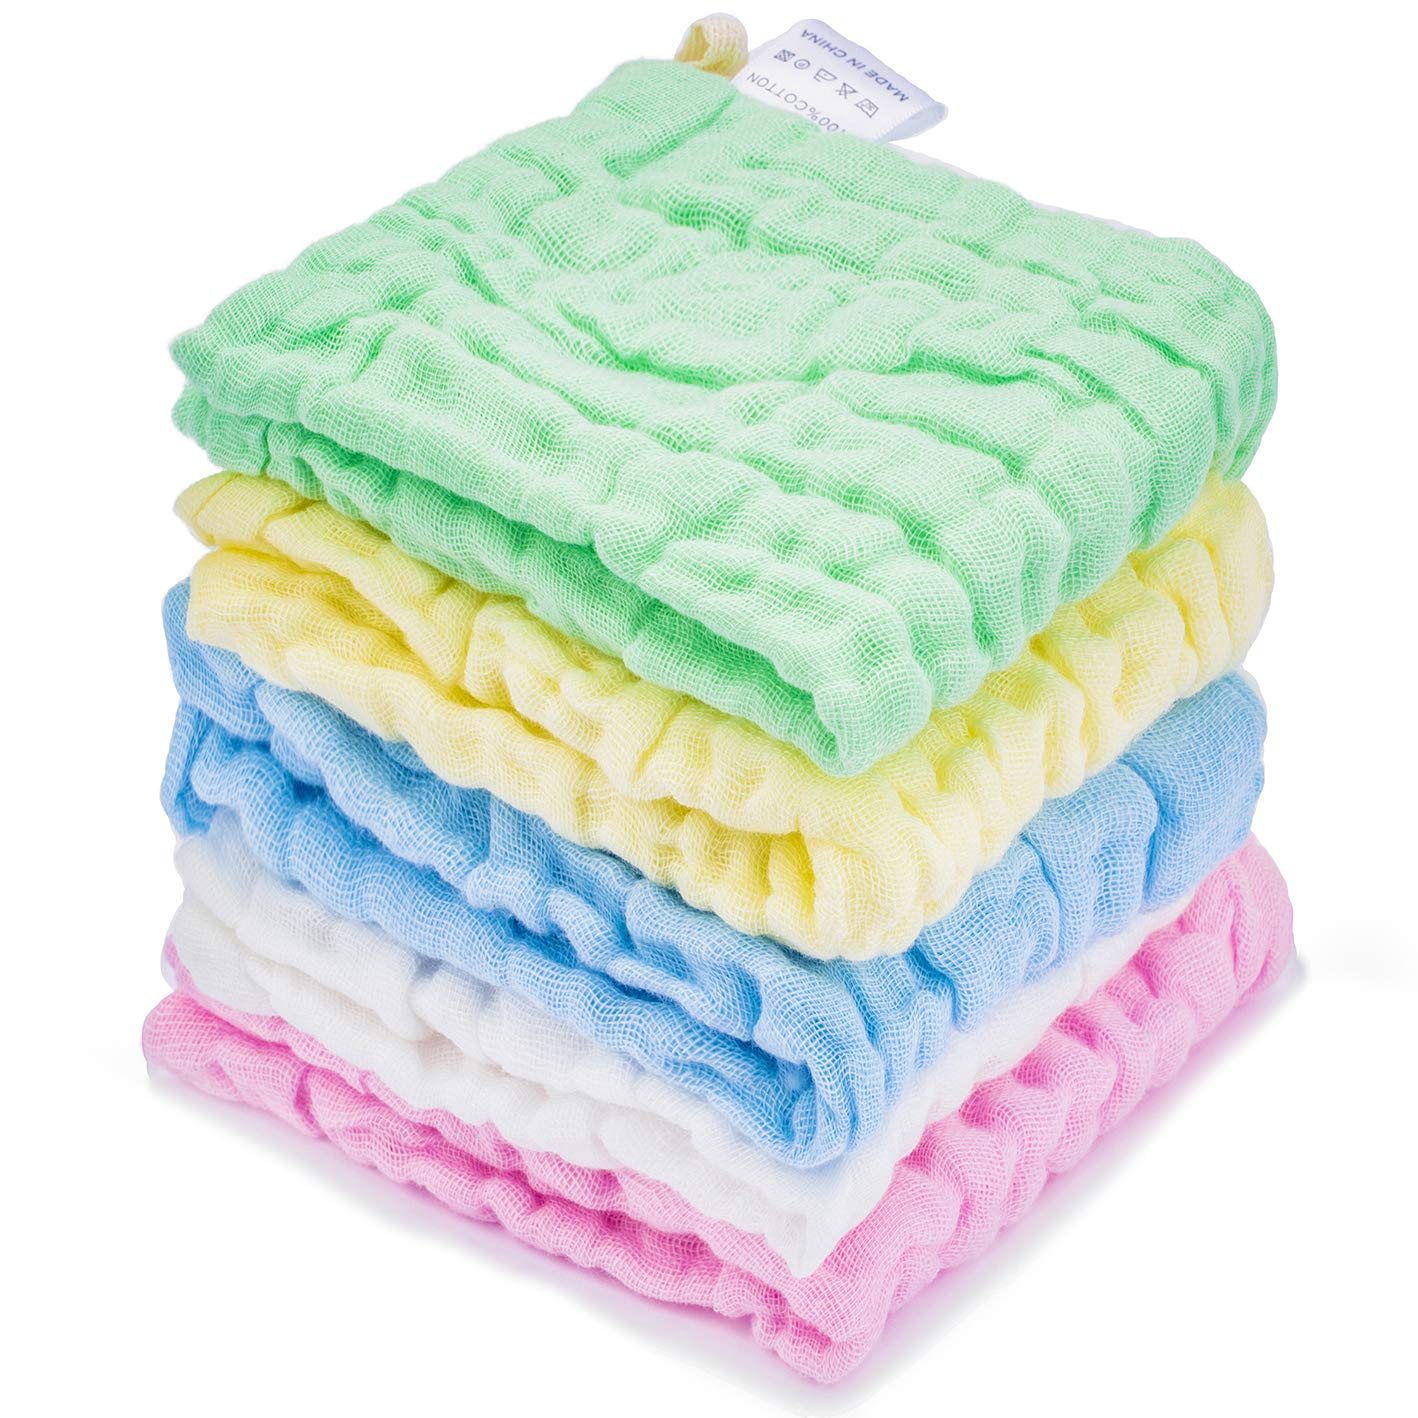 Kyapoo Baby Washcloths ONLY $6.99 (Reg. $13)